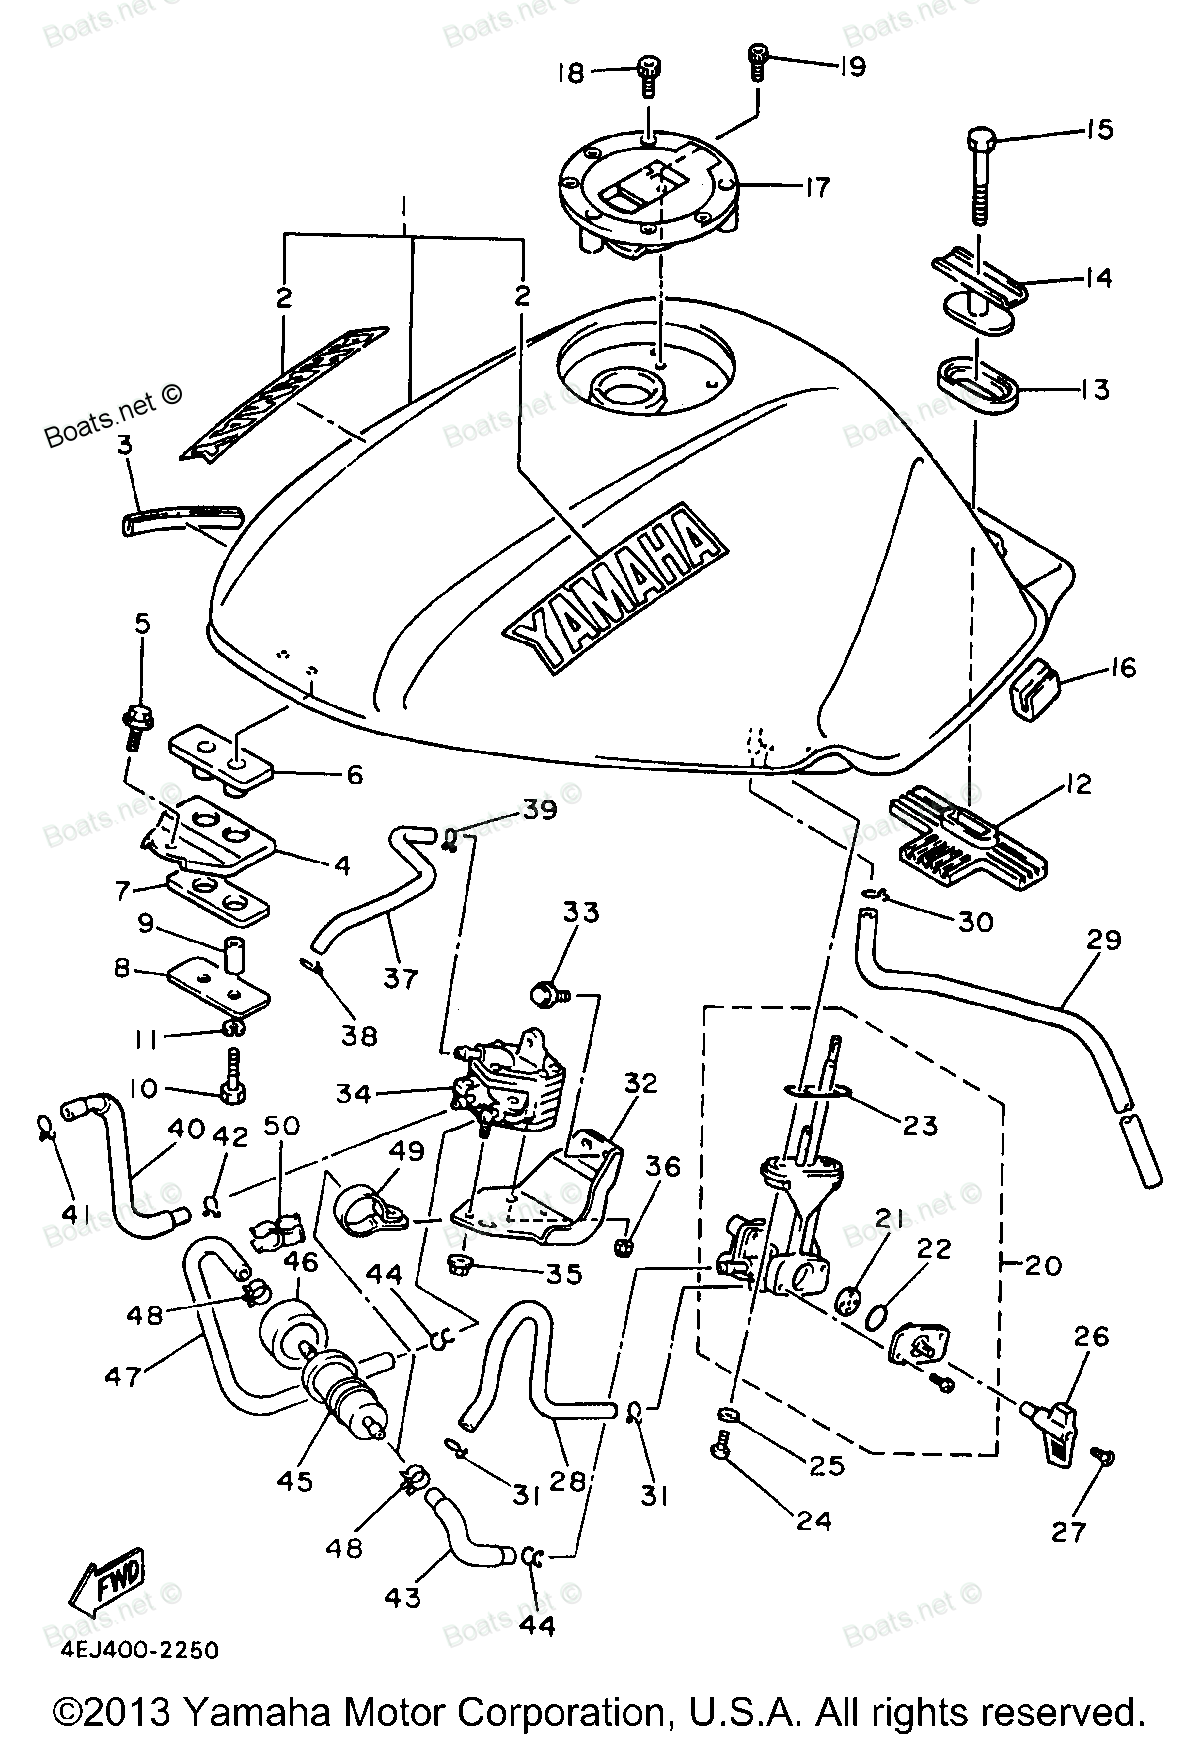 small resolution of seca 2 yamaha fuel system diagram diagram of 1997 seca ii small engine fuel line sizes motorcycle fuel line diagram